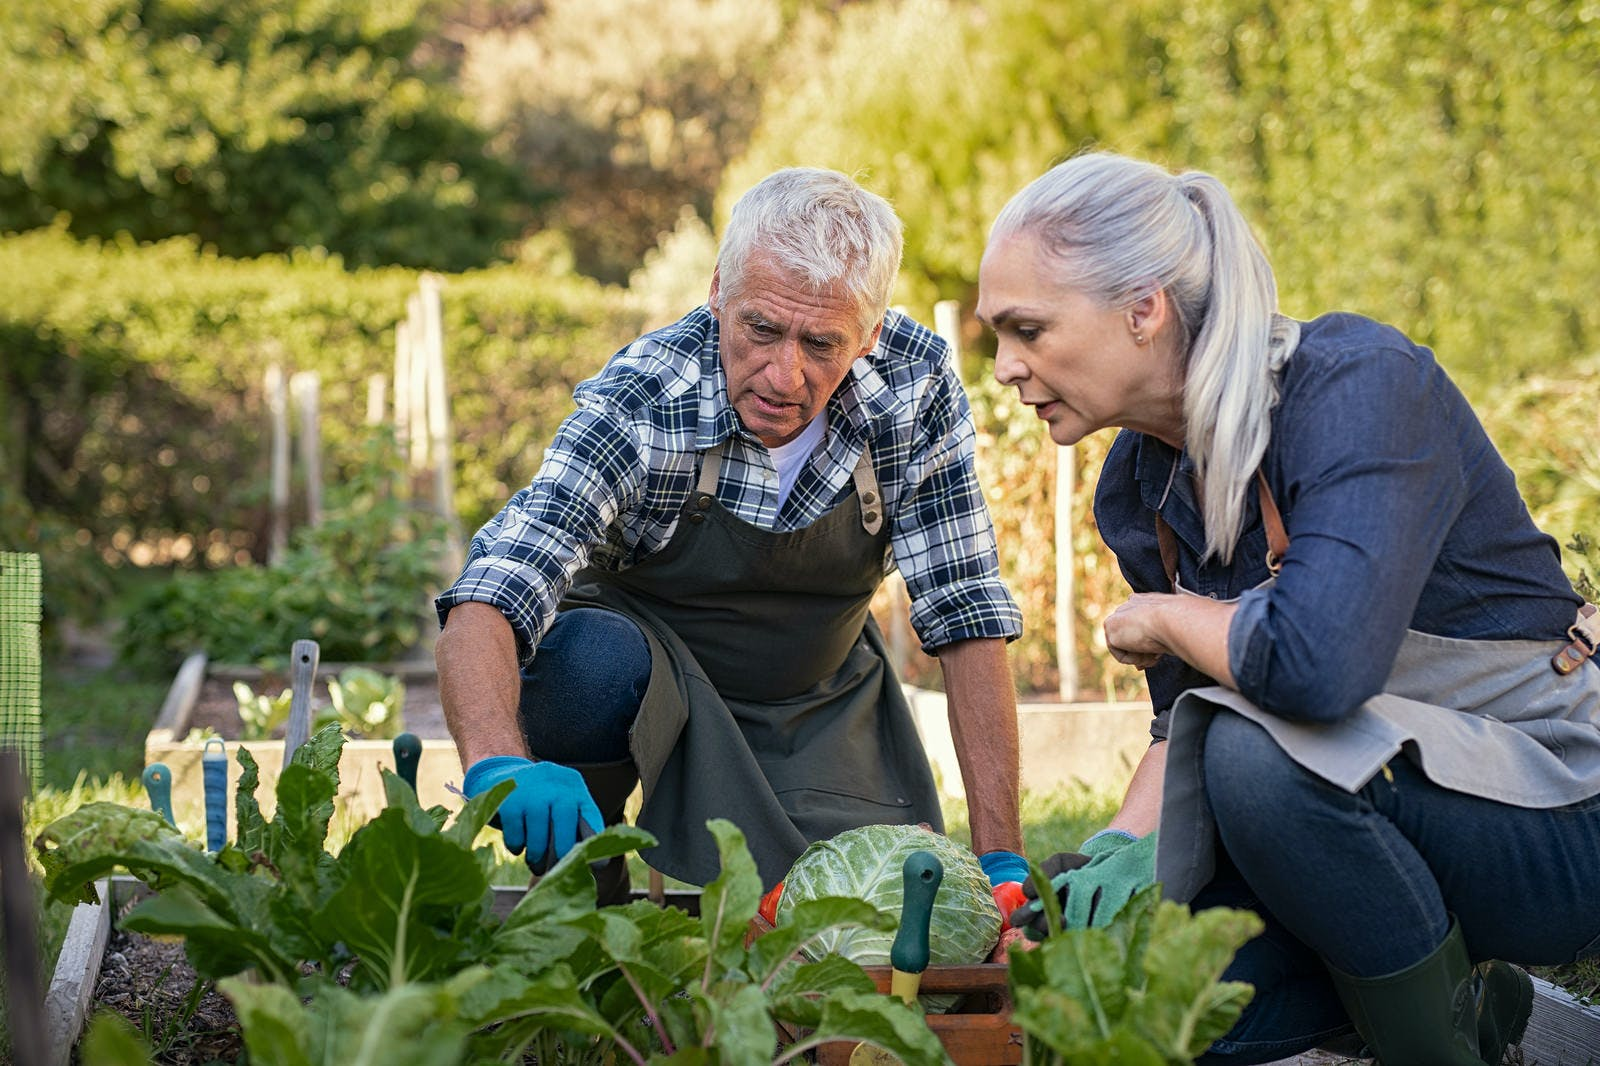 Senior man and mature woman wearing apron and picking vegetables at farm garden. Senior farmers looking at plants. Worried retired couple examine plants at backyard garden during the harvest.